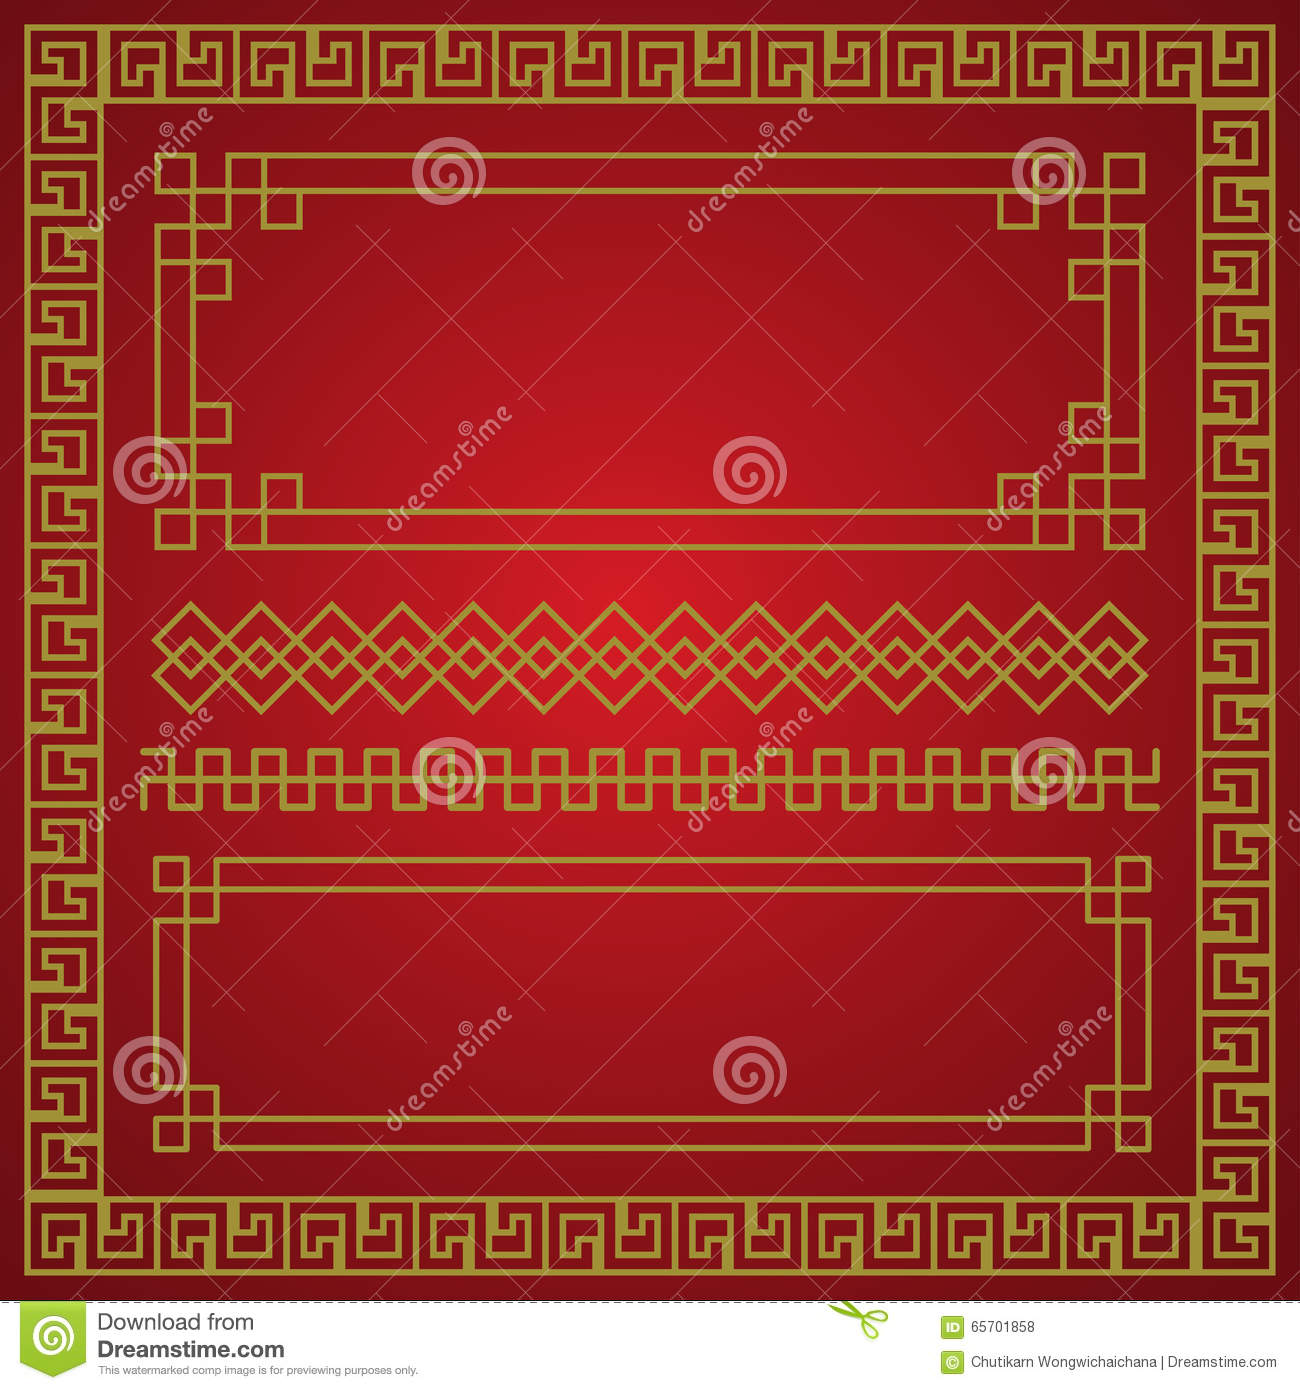 Chinese New Year Border  Vector Elements Illustration 65701858     Chinese new year border  vector elements